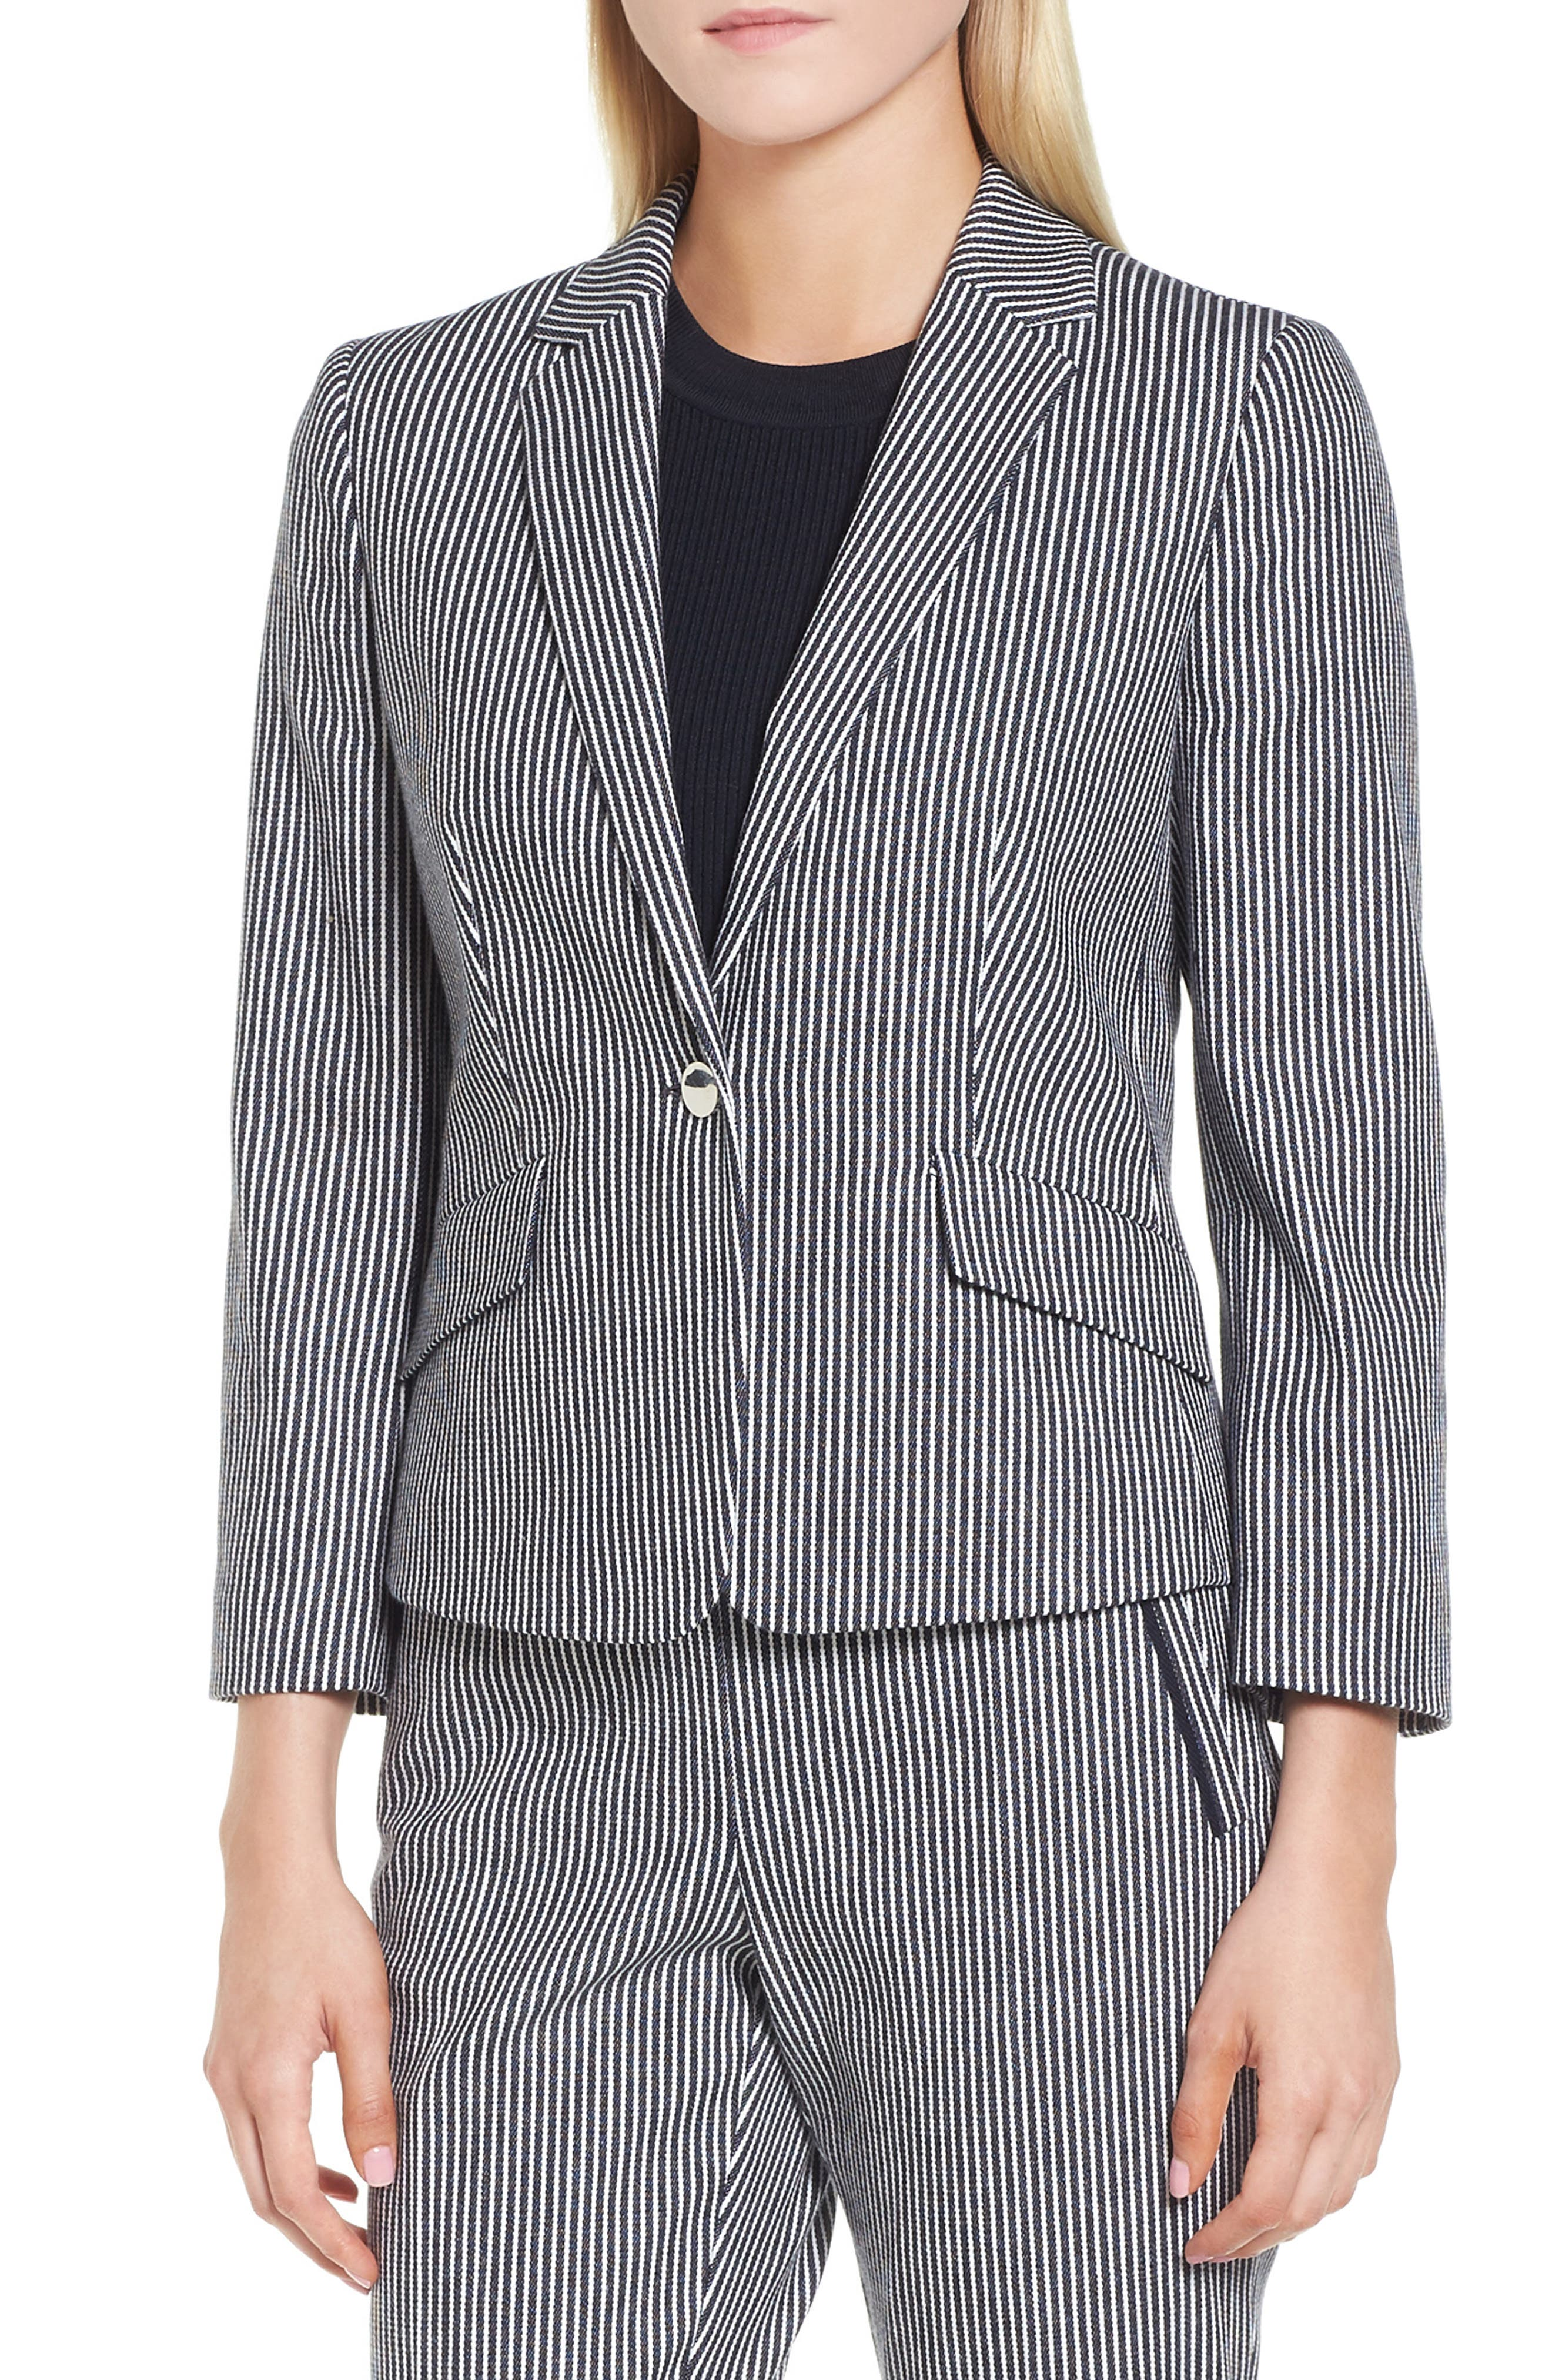 Katemika Stripe Stretch Cotton Suit Jacket,                             Main thumbnail 1, color,                             461